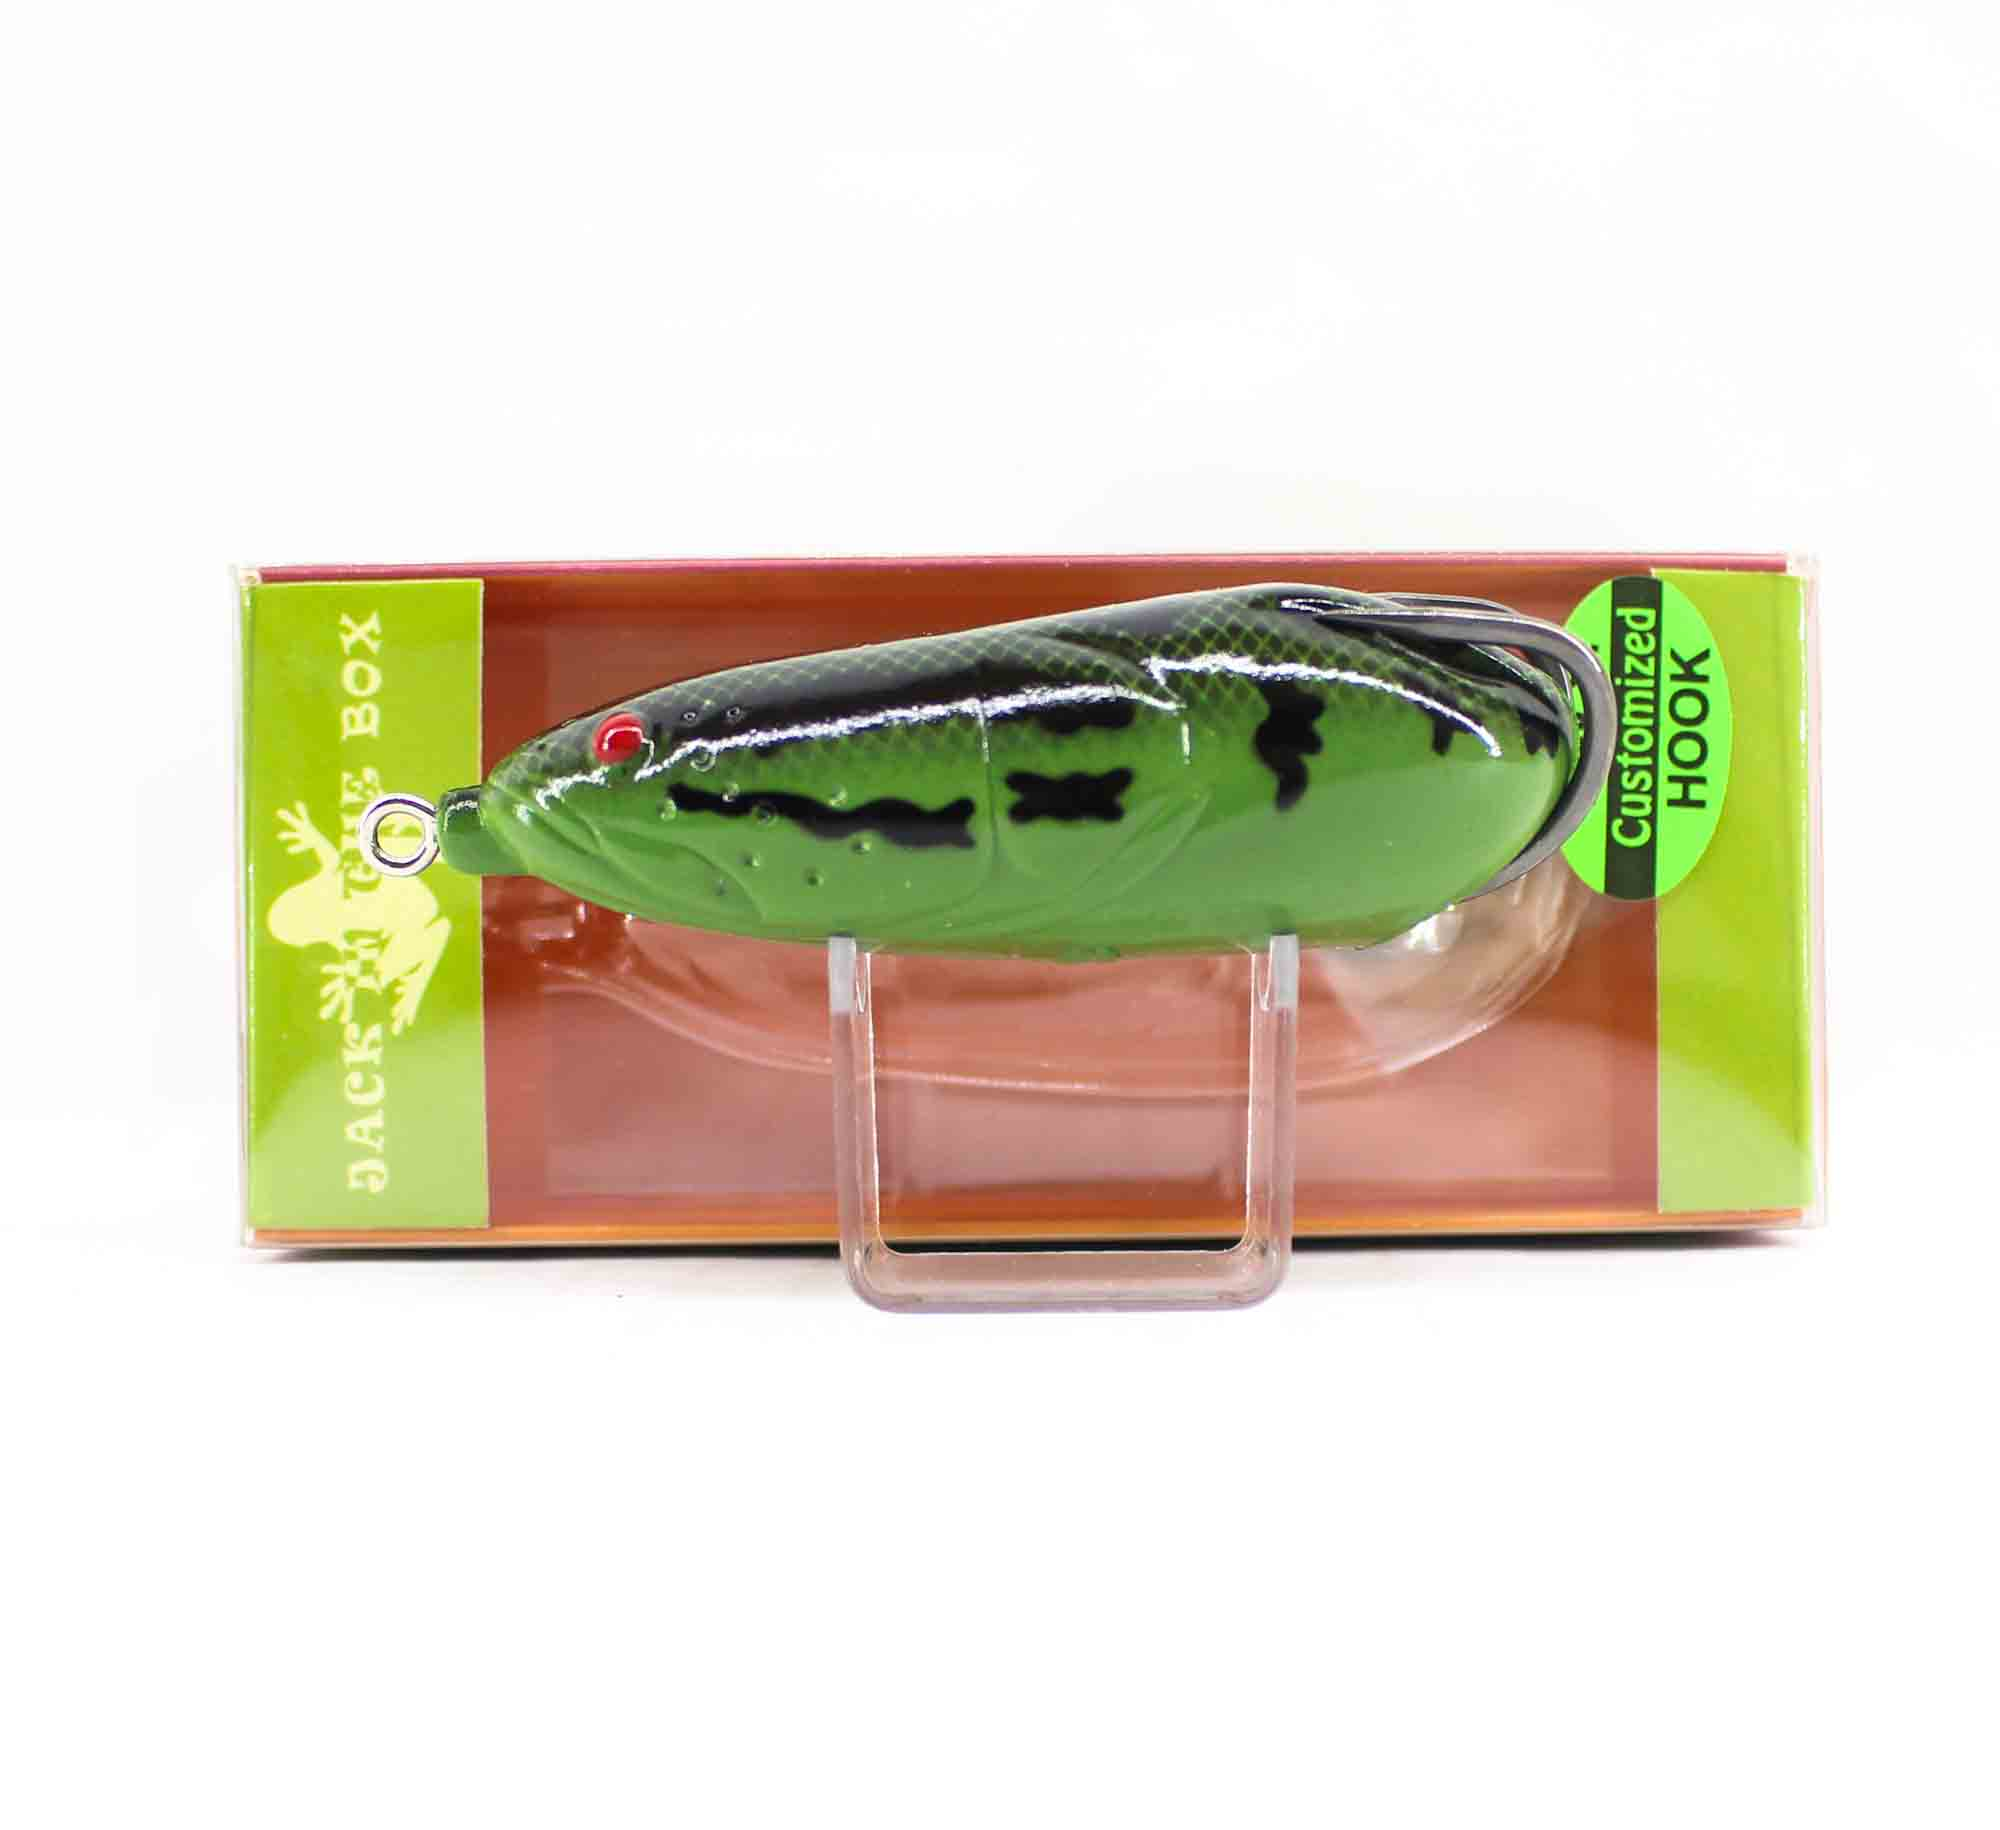 Finesse JIB Soft Plastic Floating Lure 51 (1332)